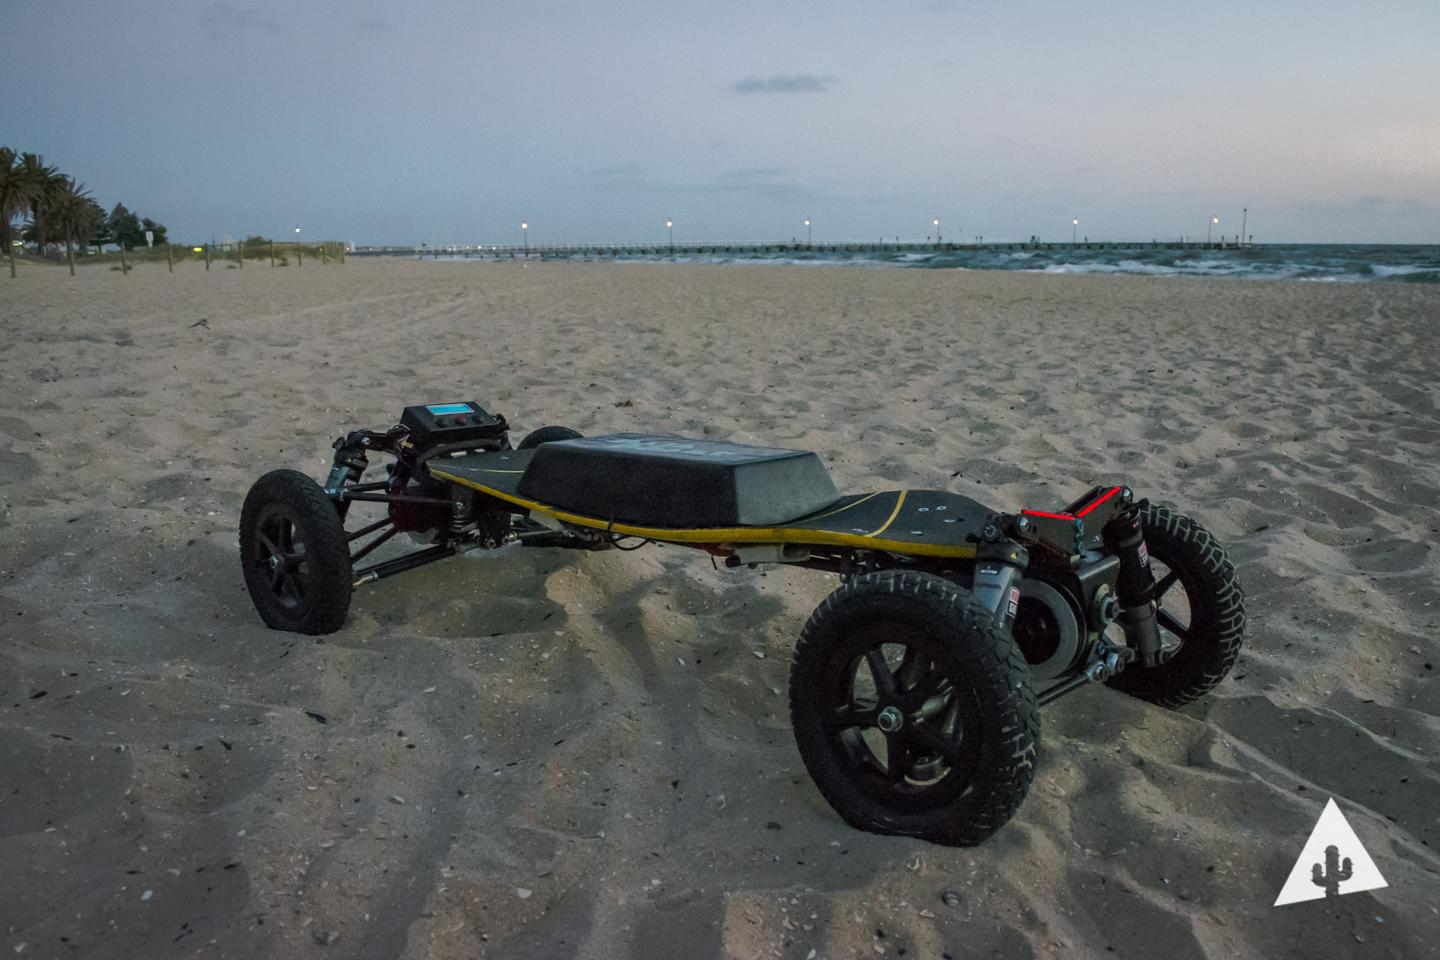 The BajaBoard is built to handle roads, dirt, grass, mountain trails or sandy beaches